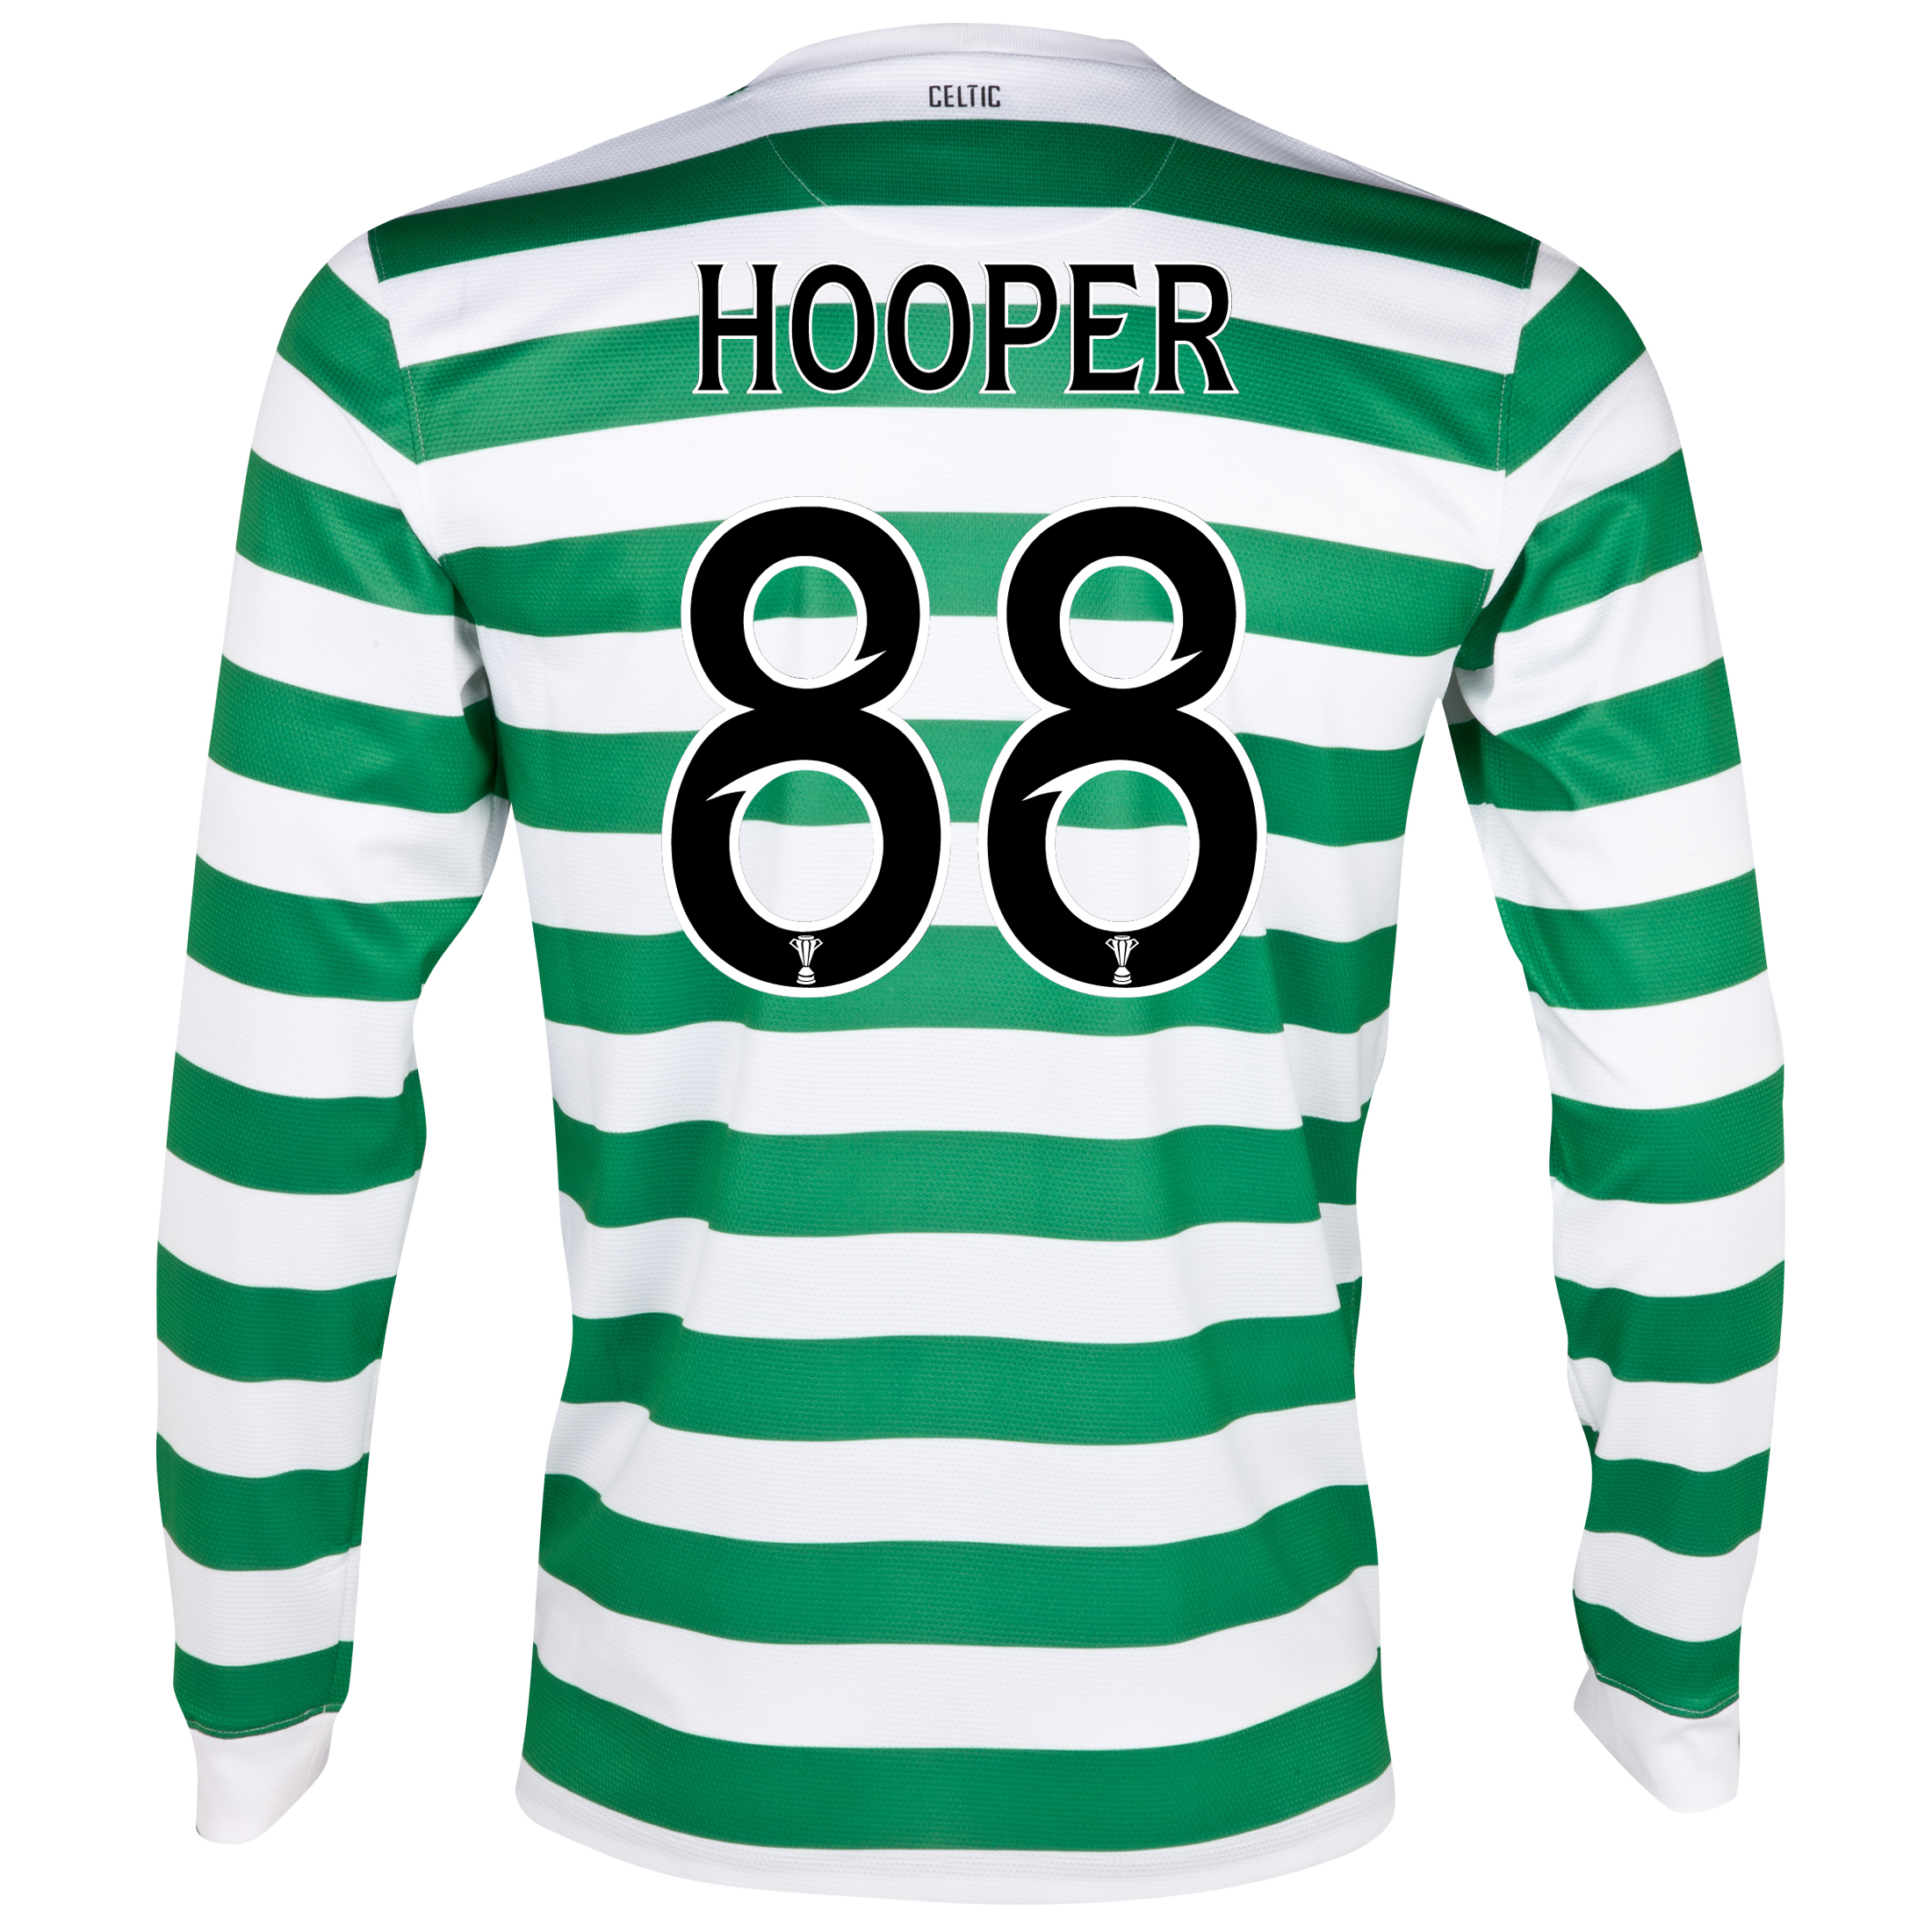 Celtic Home Shirt 2012/13 - Long Sleeved with Hooper 88 printing